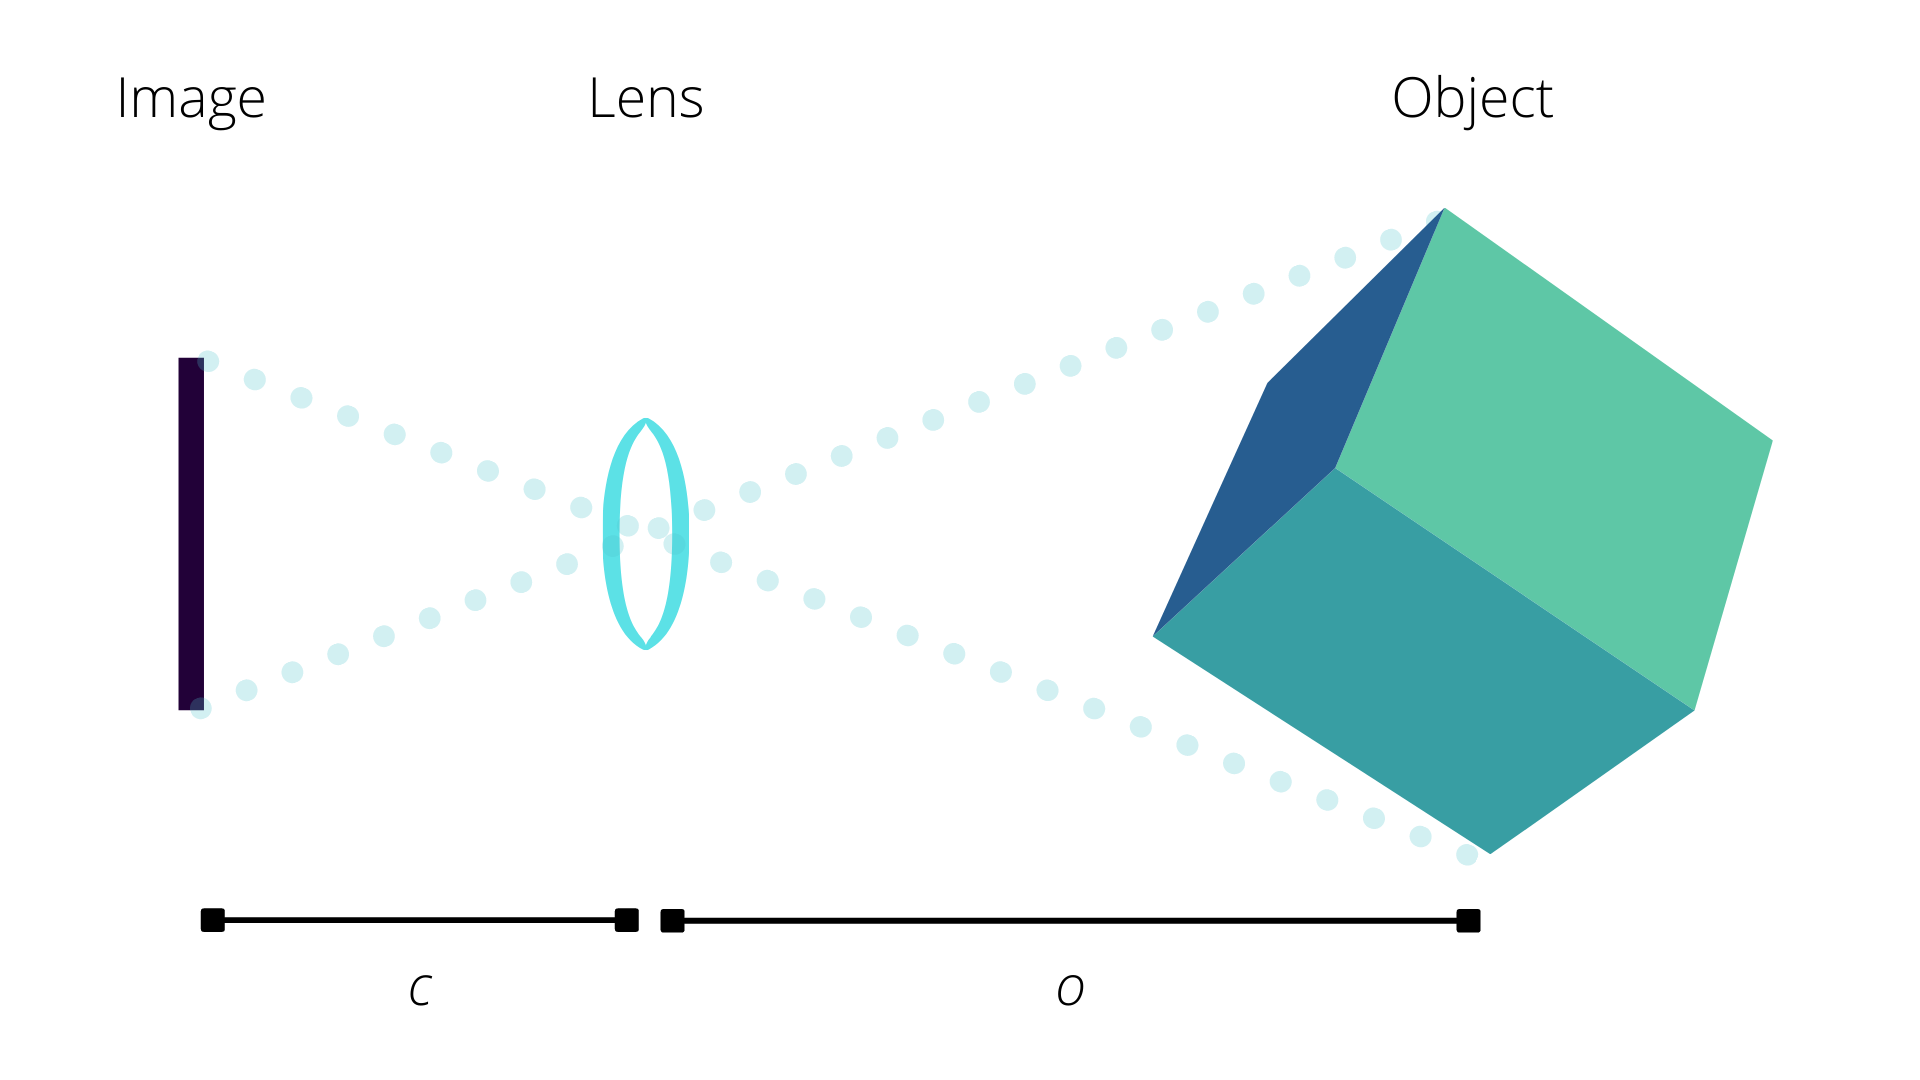 Camera calibration is a deep topic that can be pretty hard to get into. While the geometry of how a single camera system works and the physics describ